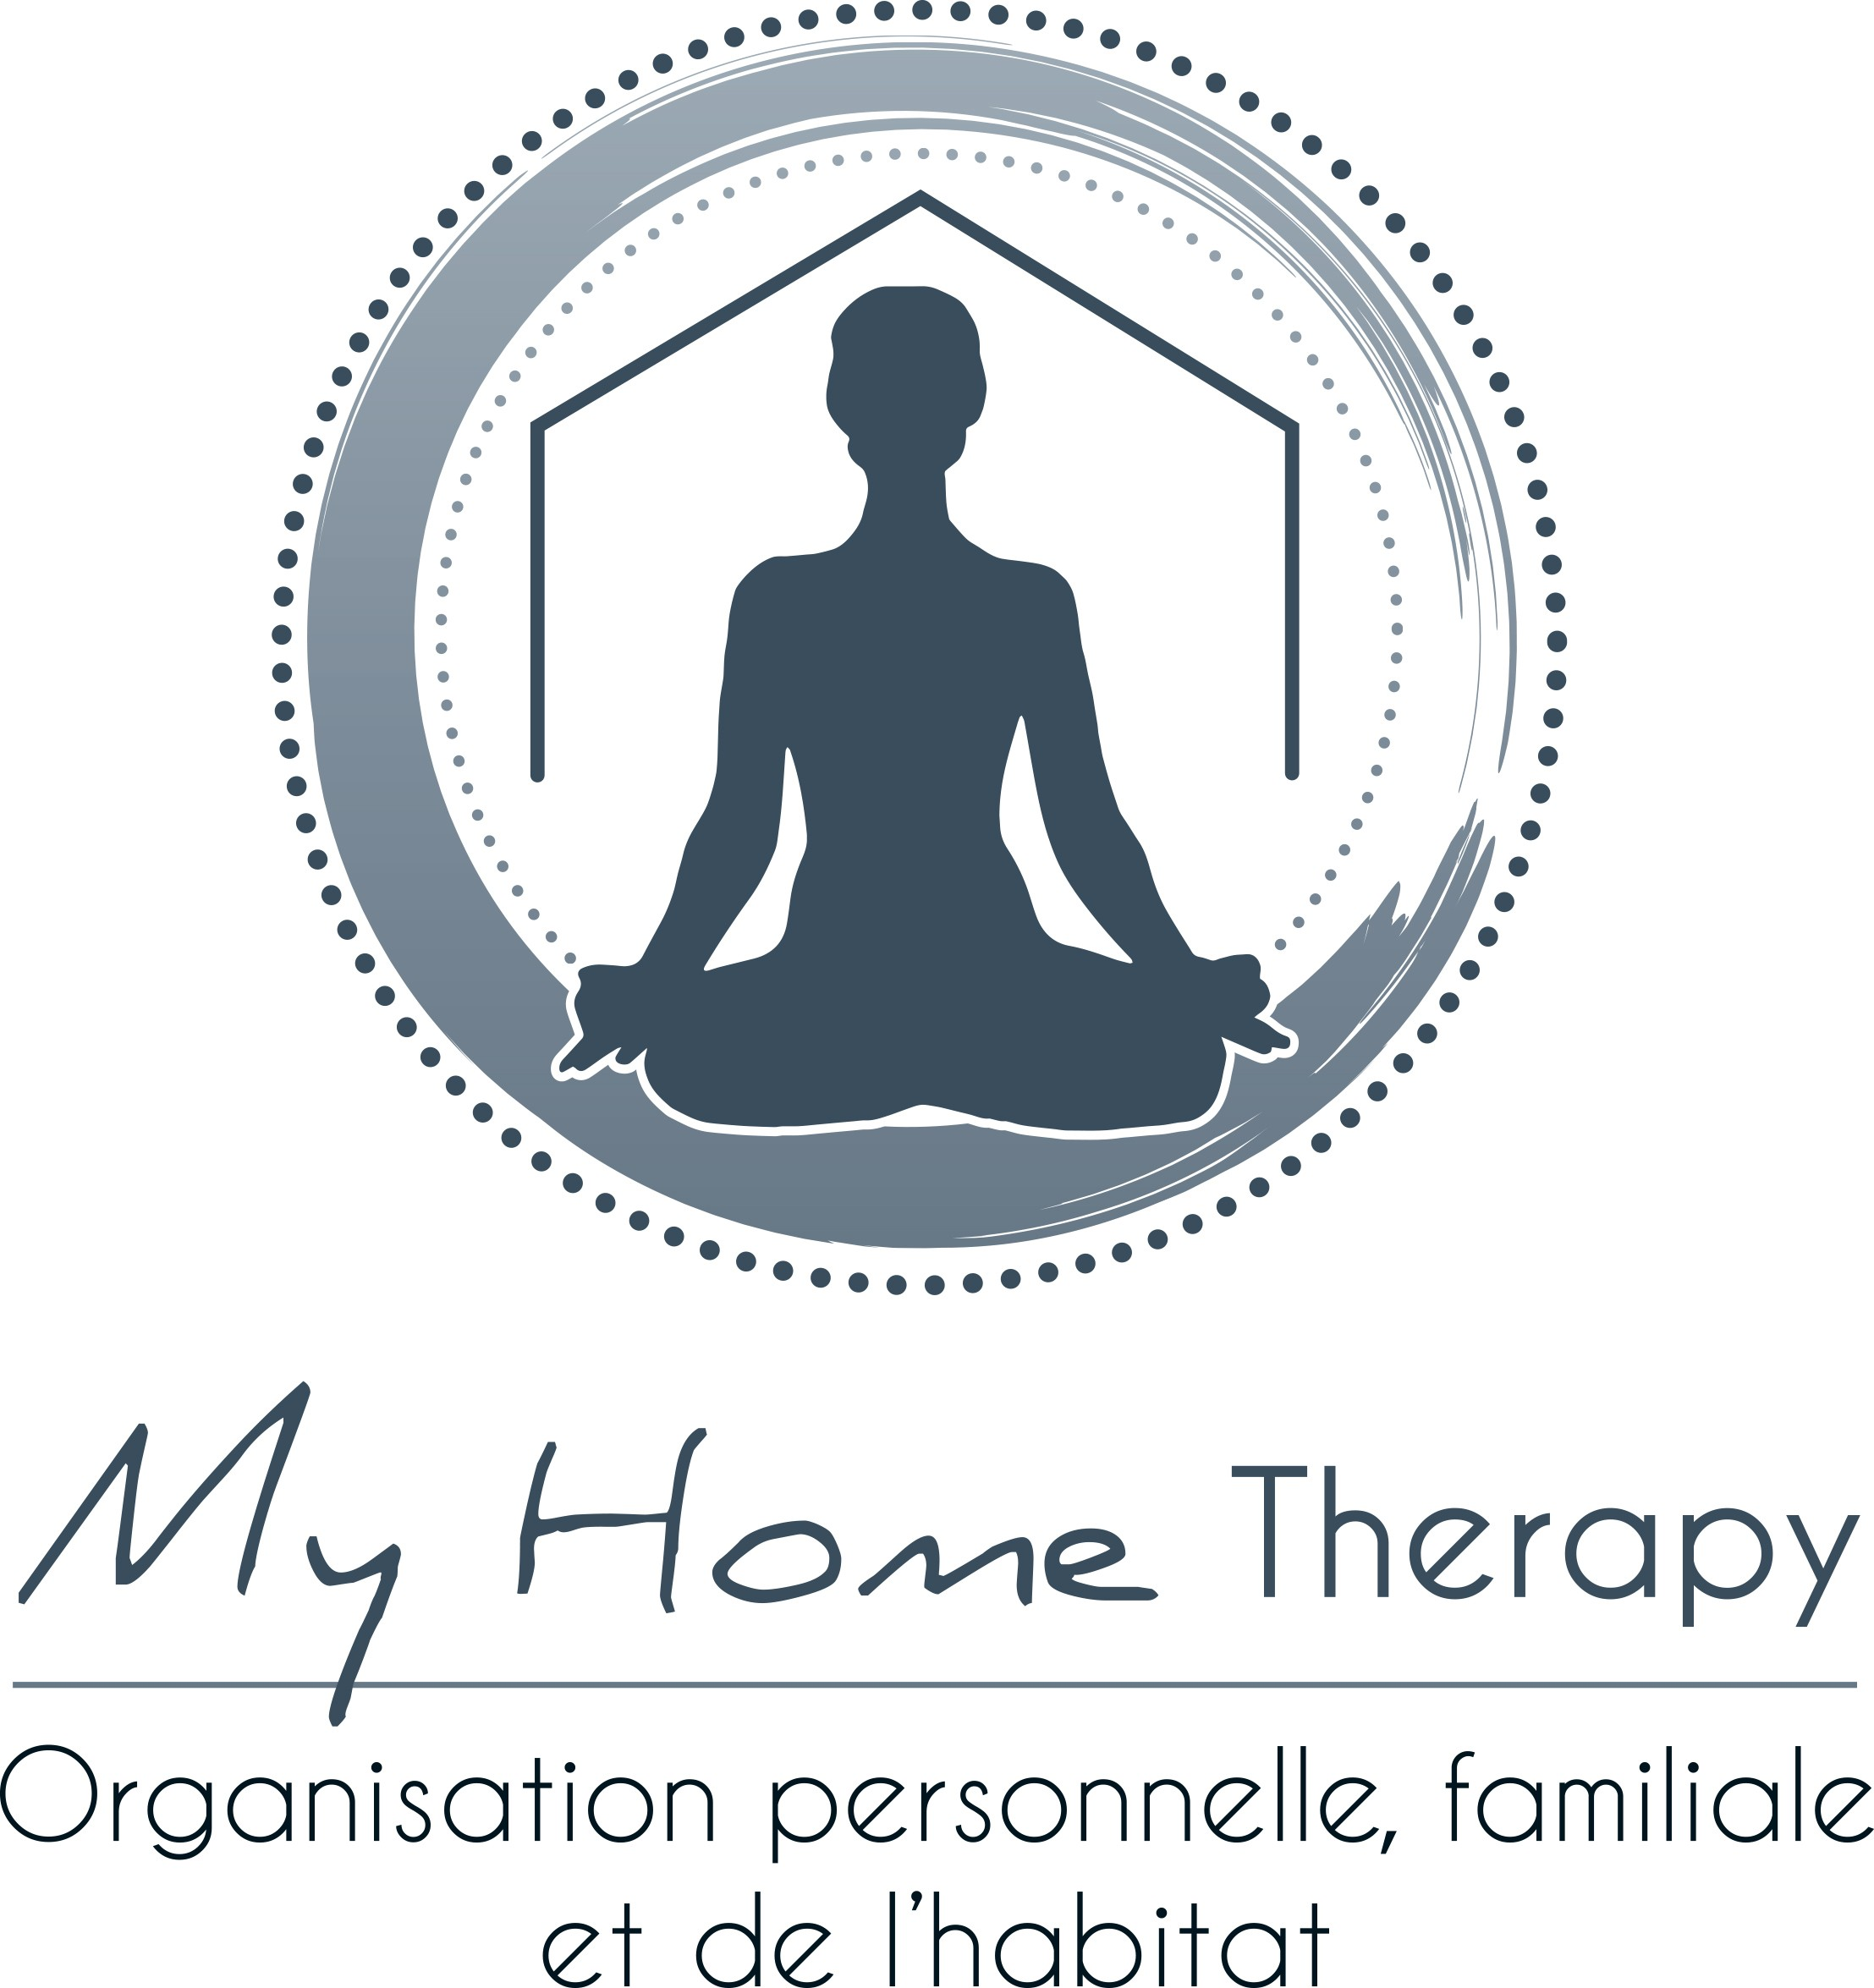 my home therapy logo carré8116113121669135426..jpg